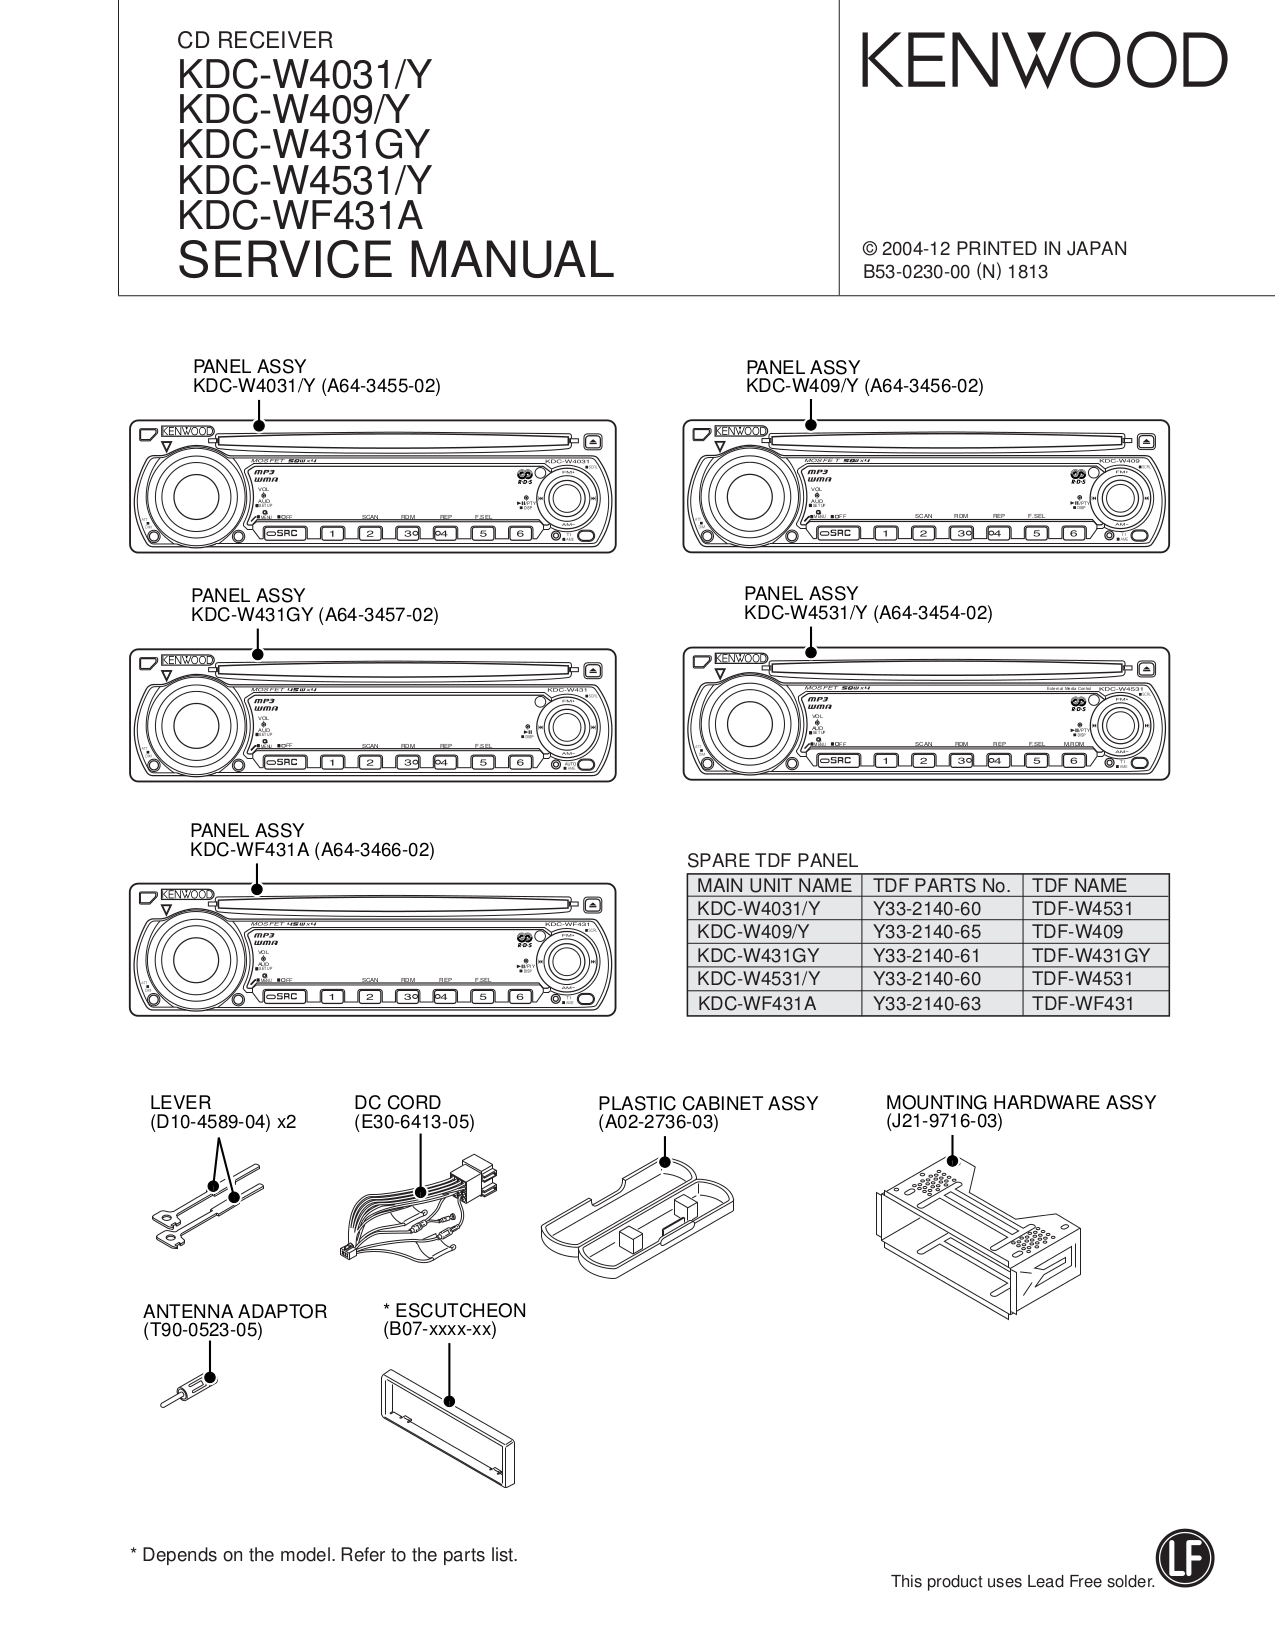 KDC W4031_W409_W431GY_W4531_WF431A.pdf 0 kenwood kdc 135 wiring diagram kenwood harness diagram \u2022 wiring Kenwood DDX470 Wiring Harness Diagram at soozxer.org